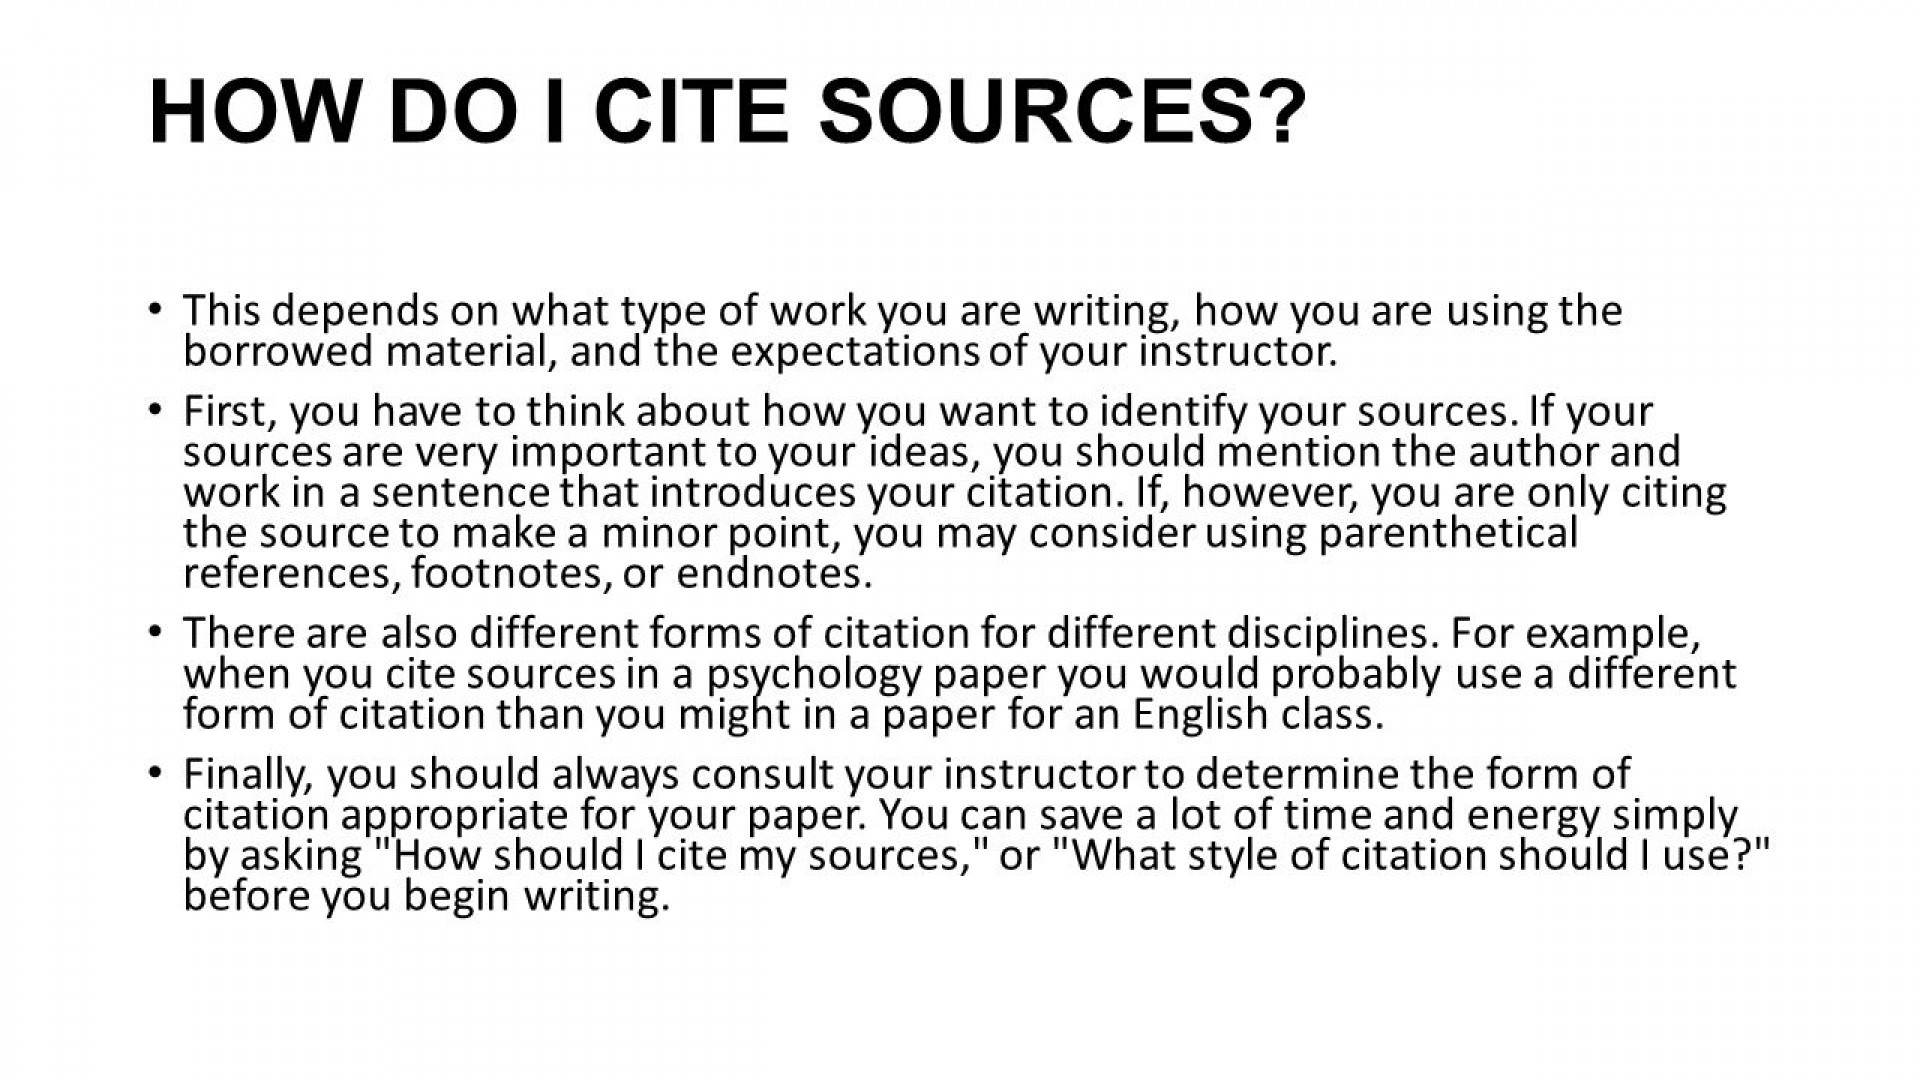 025 How To Cite Sources In An Essay Citations Do U Website Citing Write Bibliography Sl Secondary Apa References Mla Citation Surprising Using Style Example 1920